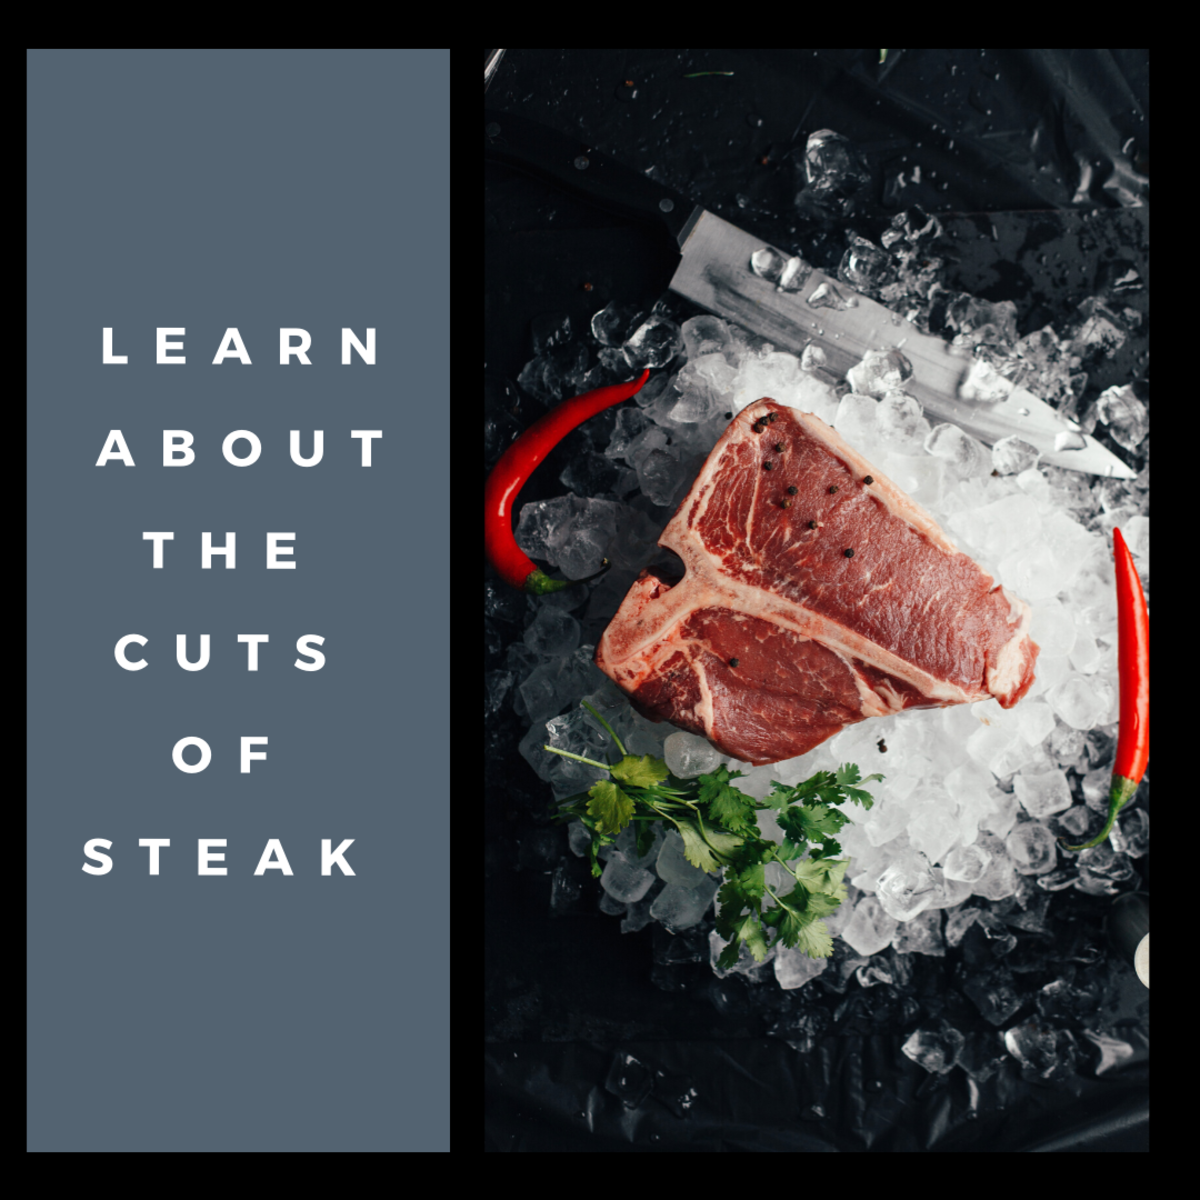 Different cuts of steak require different cooking methods. Read on to learn more.